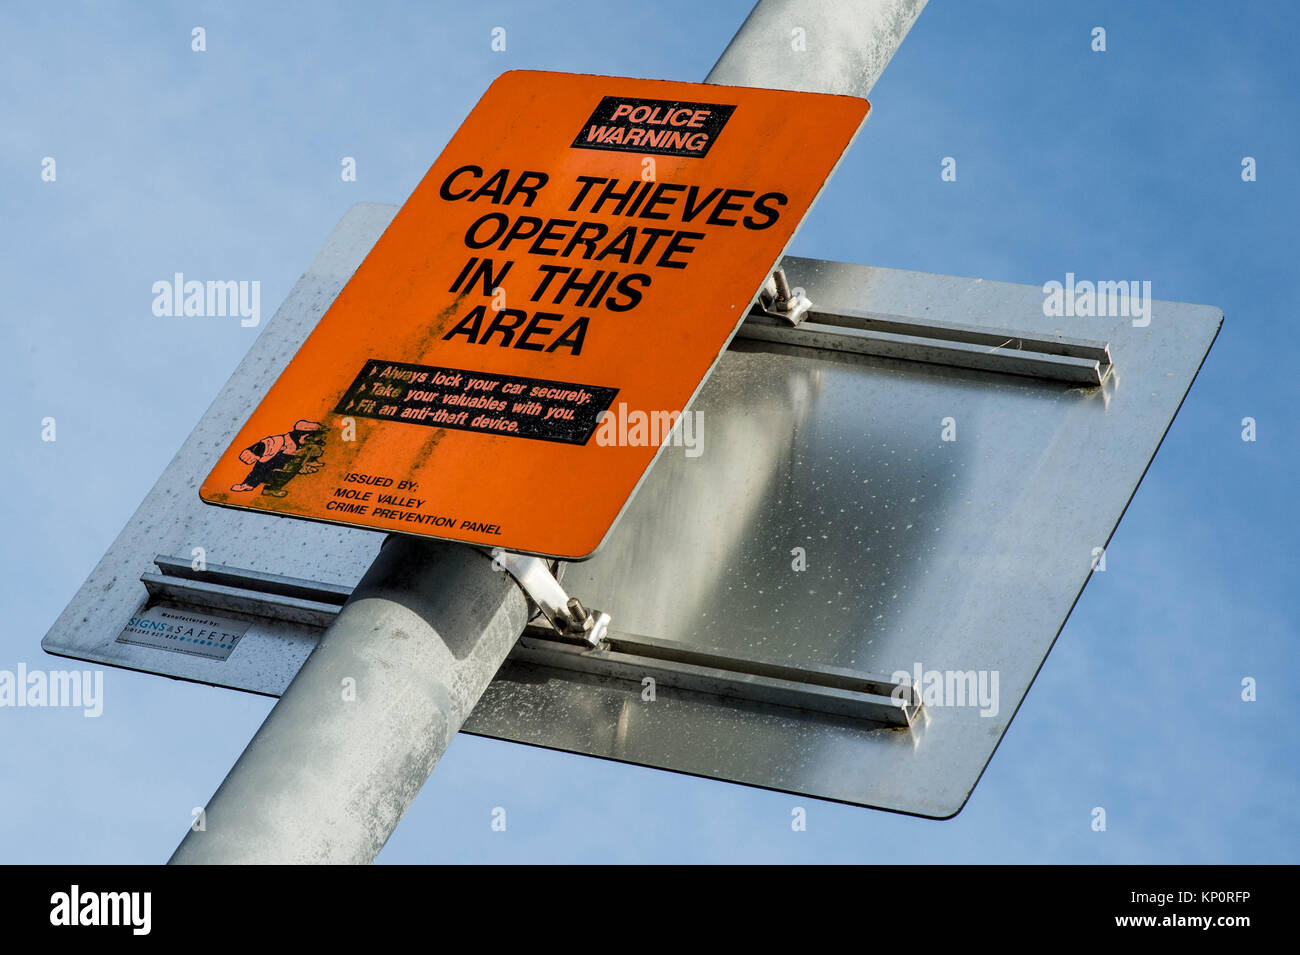 Police Warning Notice on Car Thieves - Stock Image